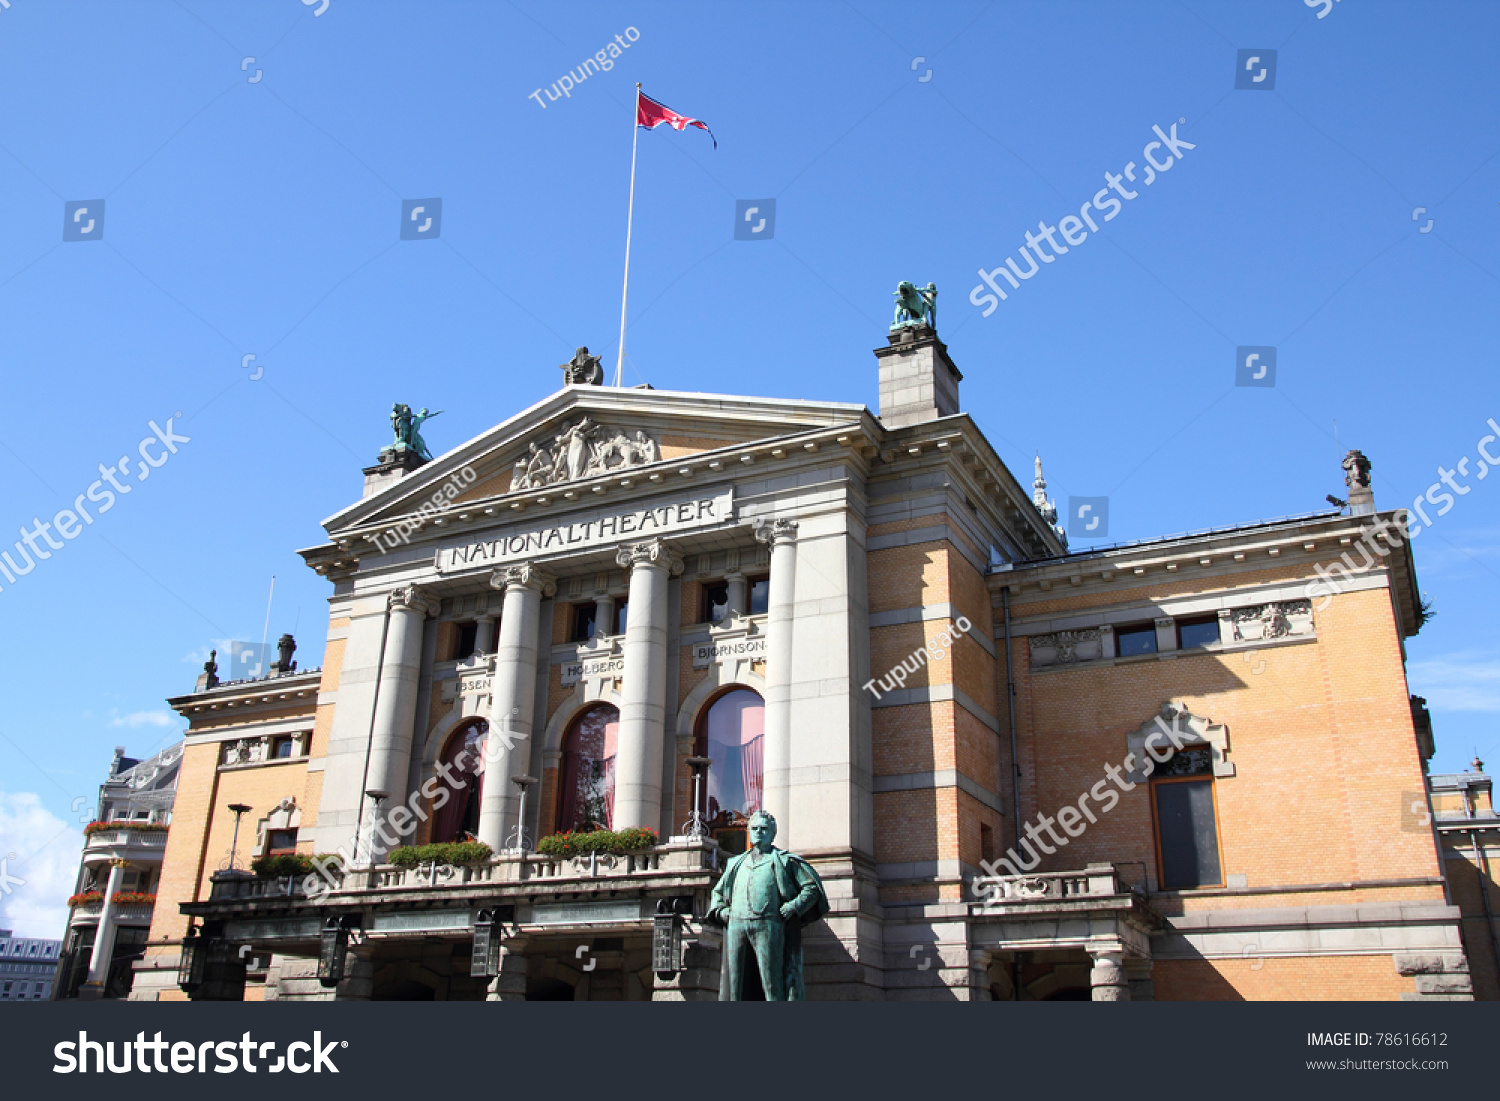 oslo the capital city of norway One of the most expensive cities in the world doesn't necessarily have to cost a  fortune i will show you how to get the best oslo city break deal.